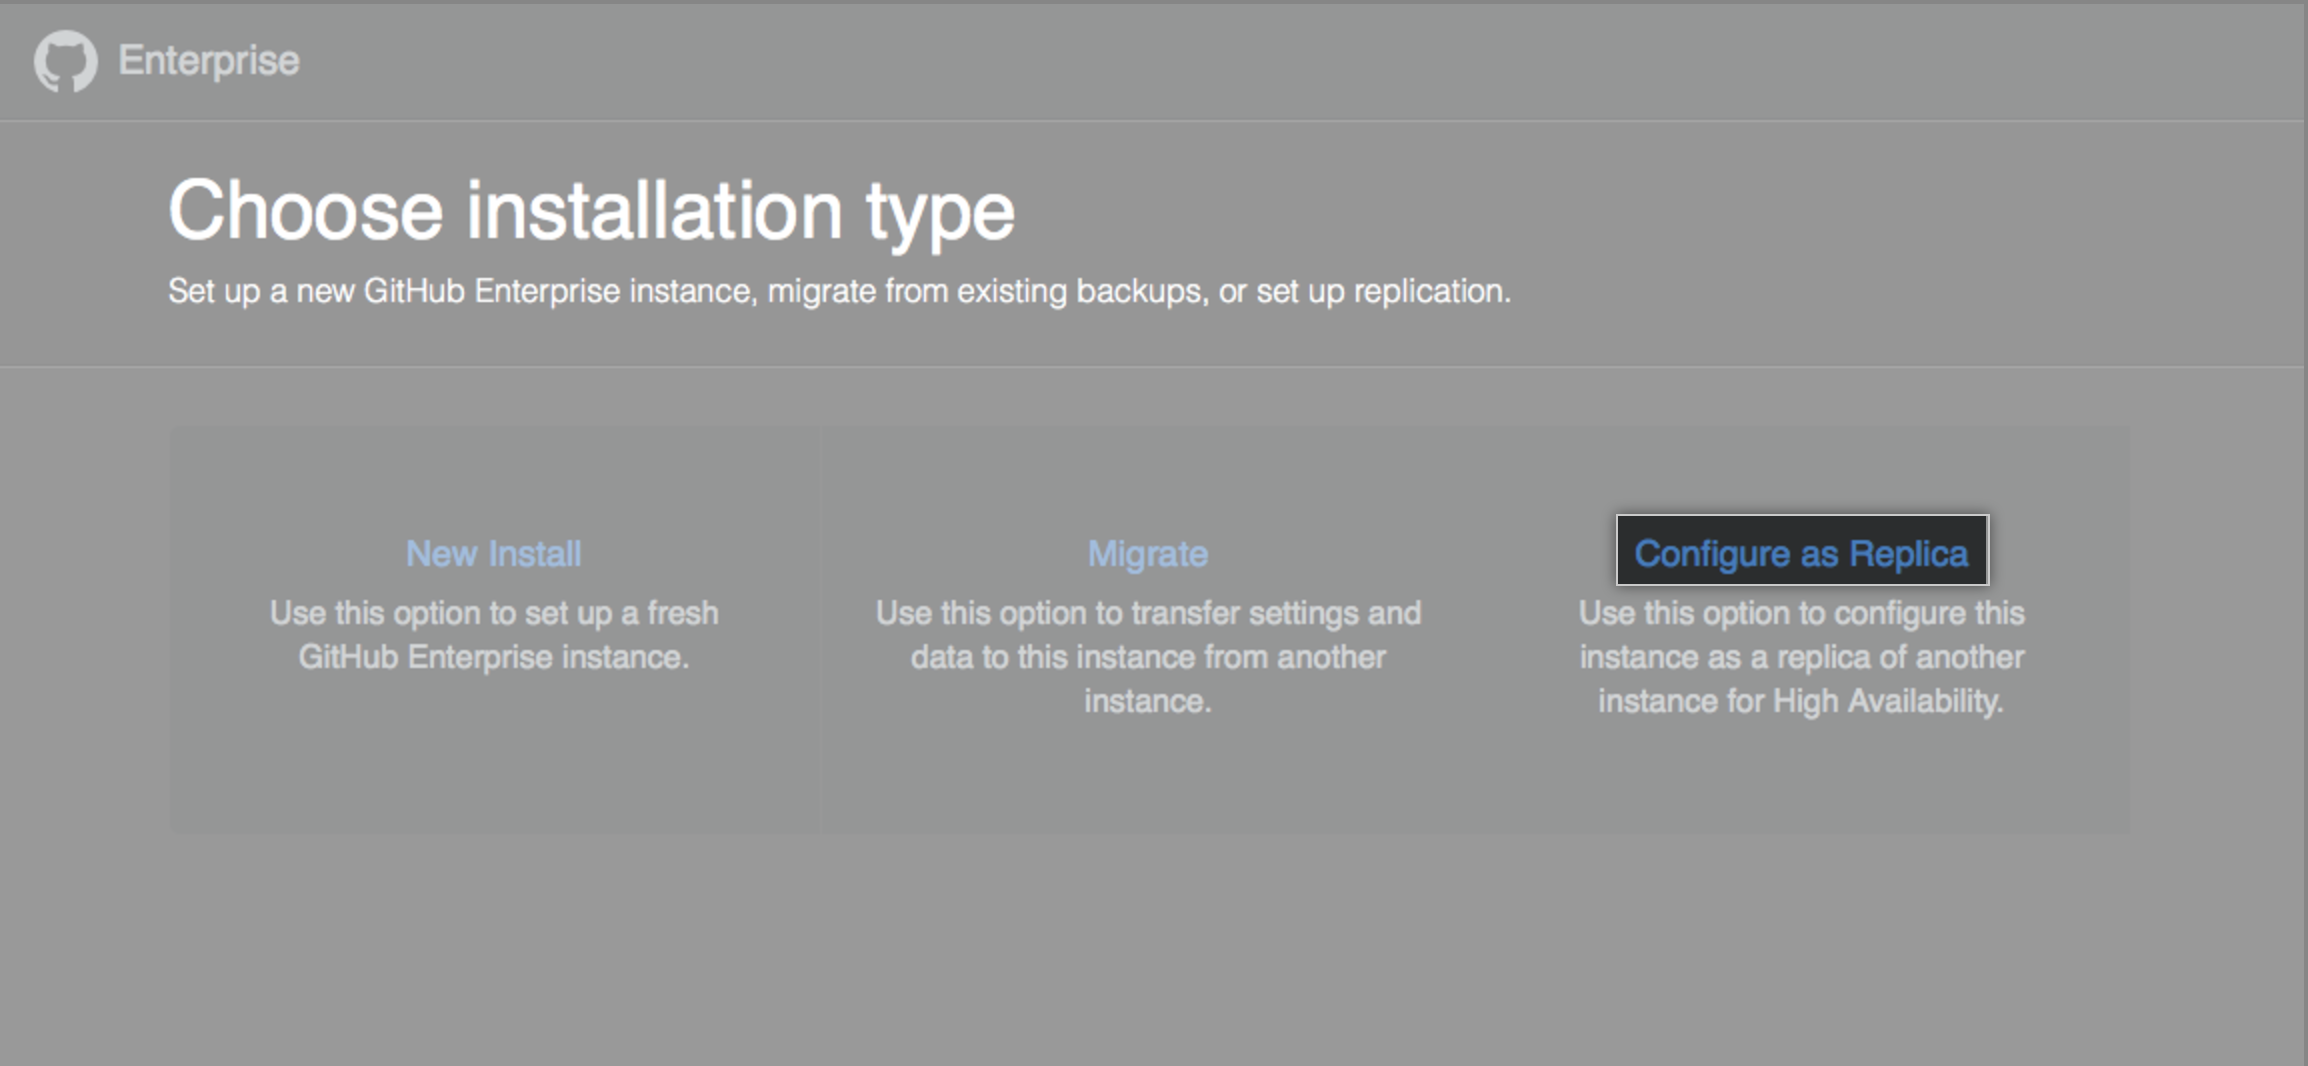 Installation options with link to configure your new instance as a replica